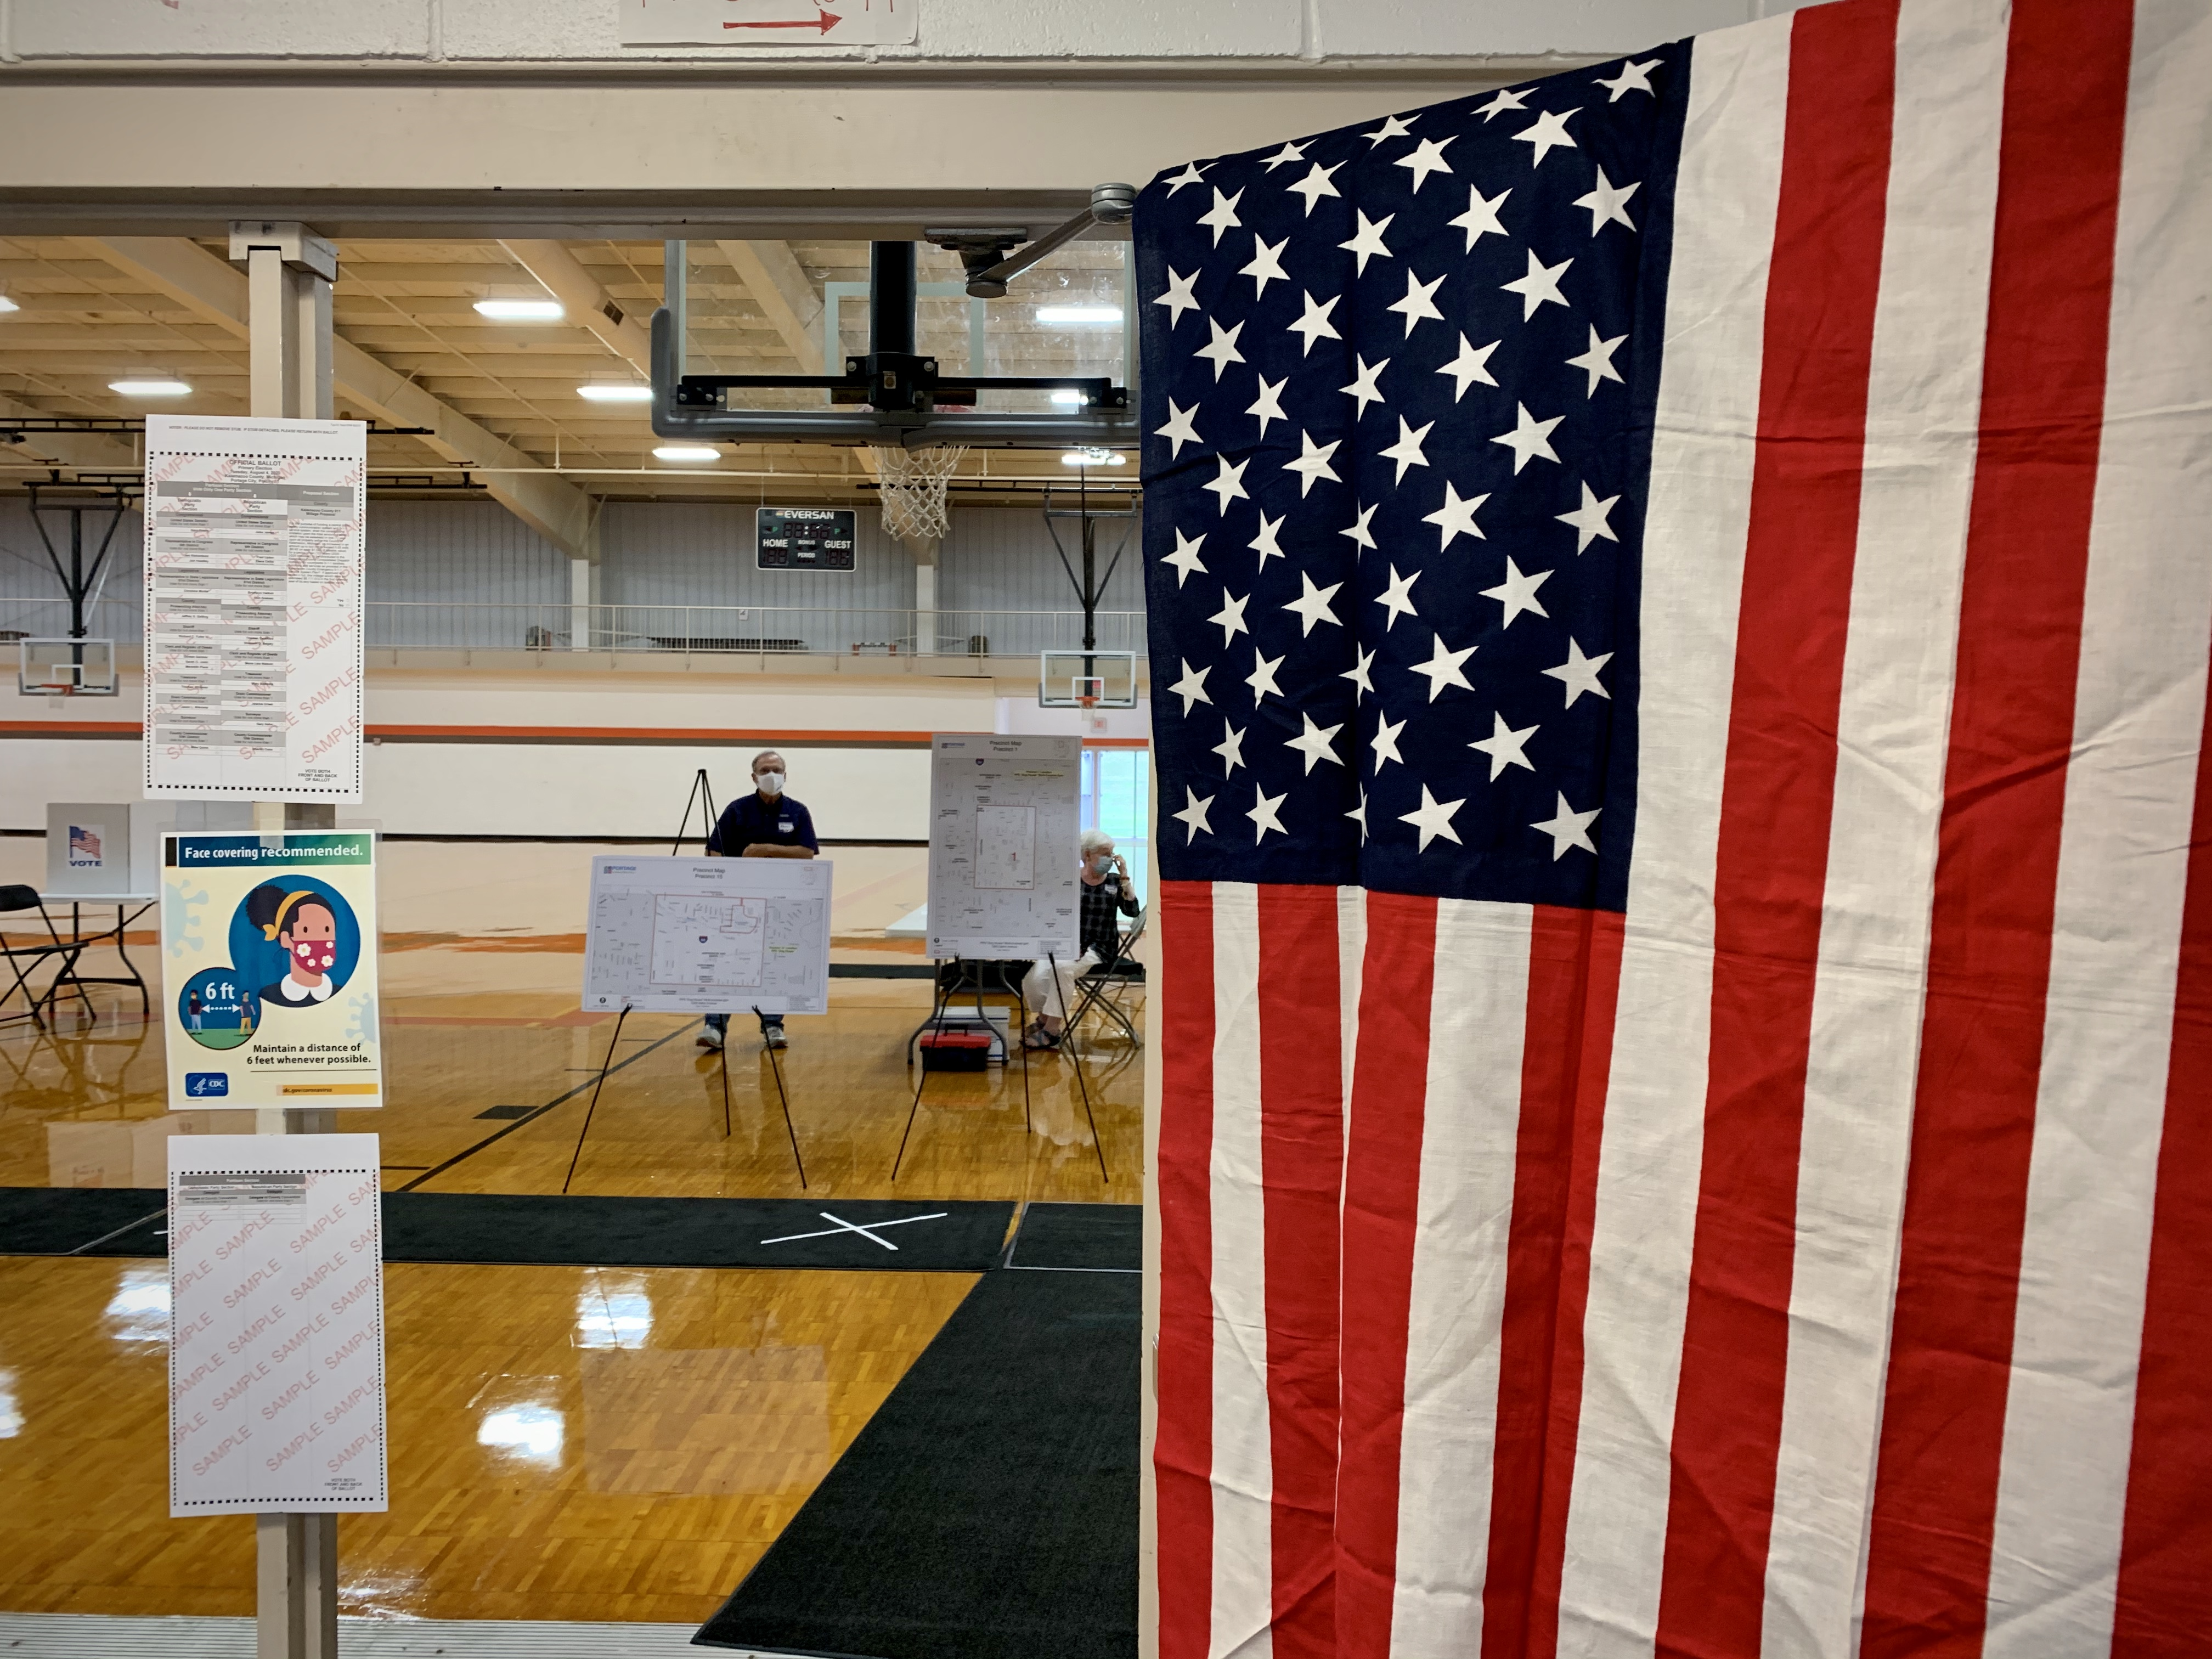 Voters cast their ballots at Portage Northern High School on Tuesday, Aug. 4, 2020. Polling places, with reminders to maintain social distancing because of the COVID-19 pandemic, opened across Michigan at 7 a.m. Tuesday for the state's primary election. (WWMT/Hannah Knowles)